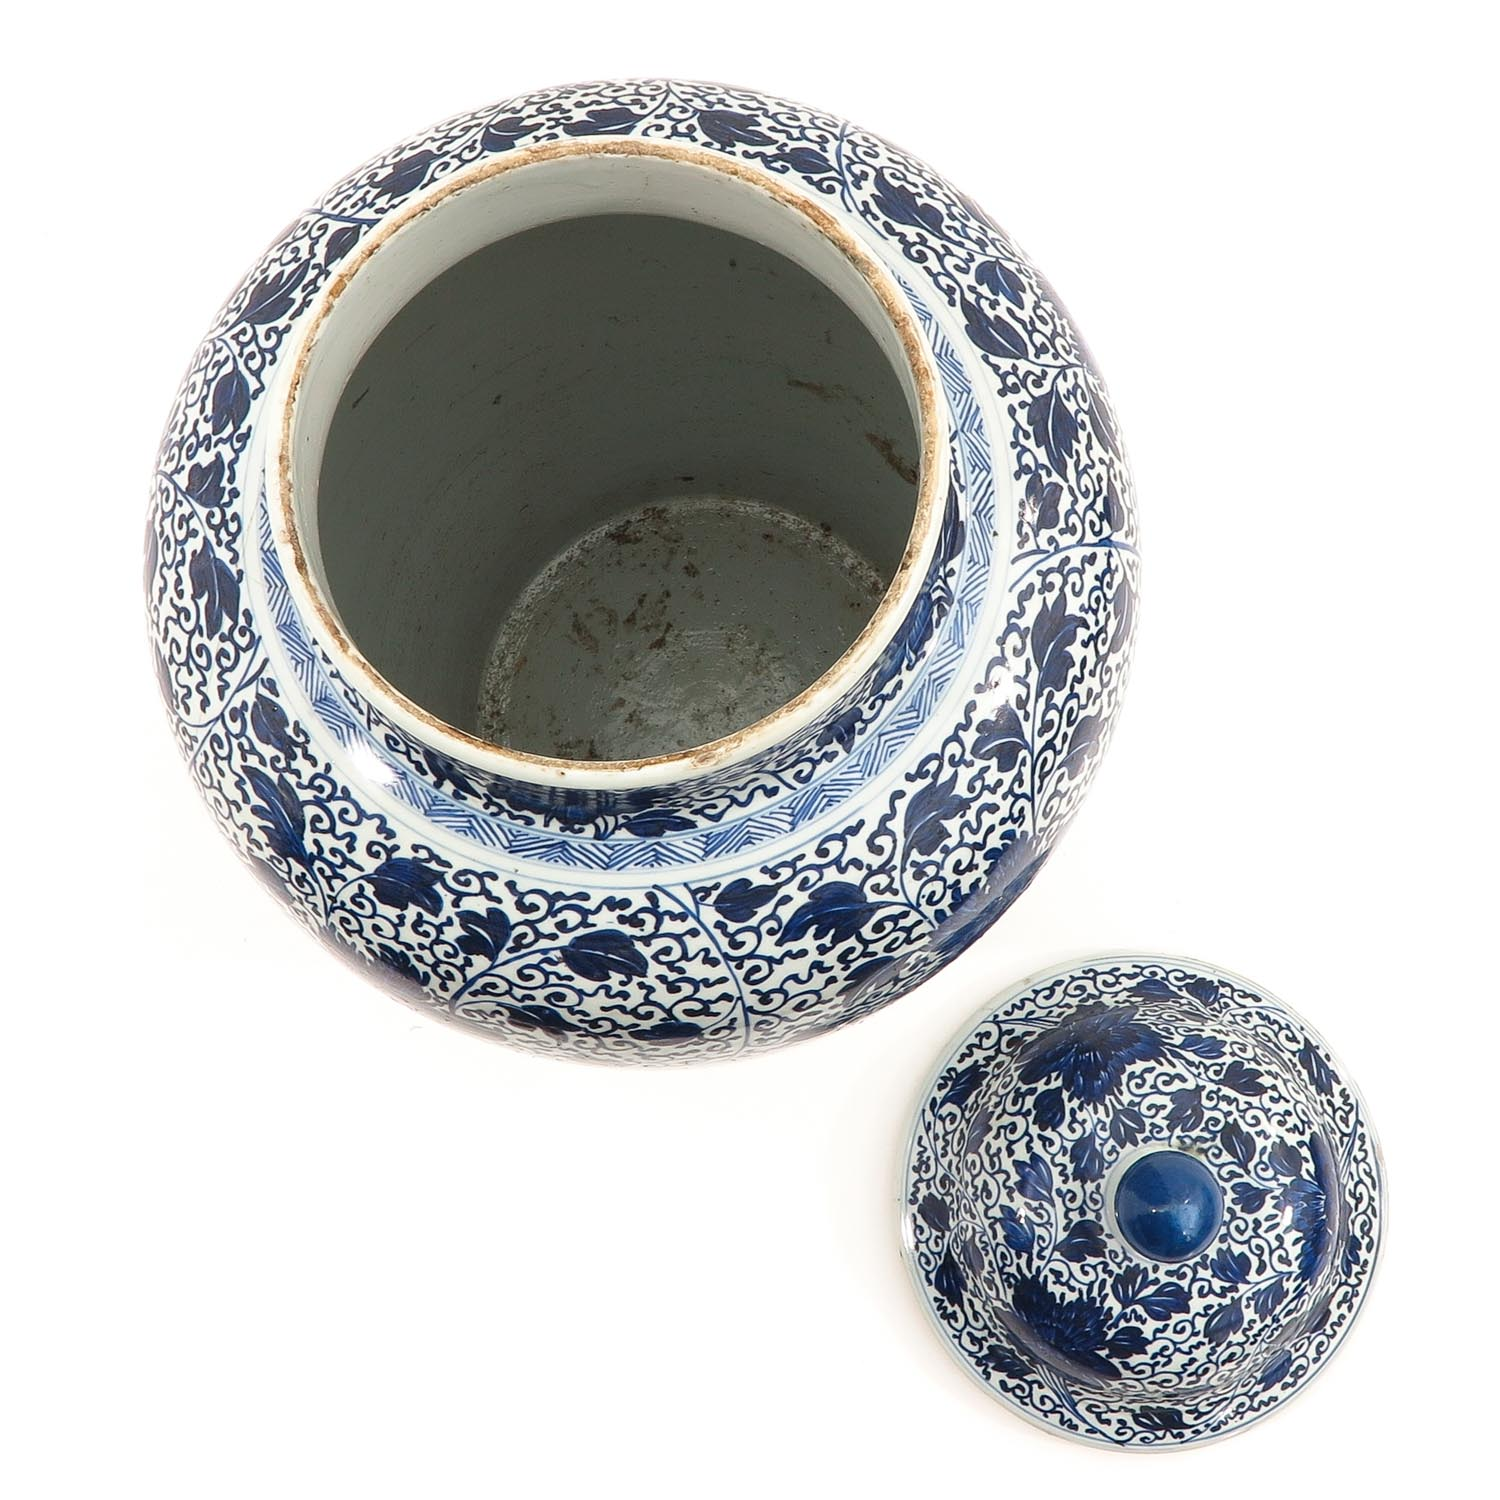 A Large Blue and White Jar - Image 5 of 9